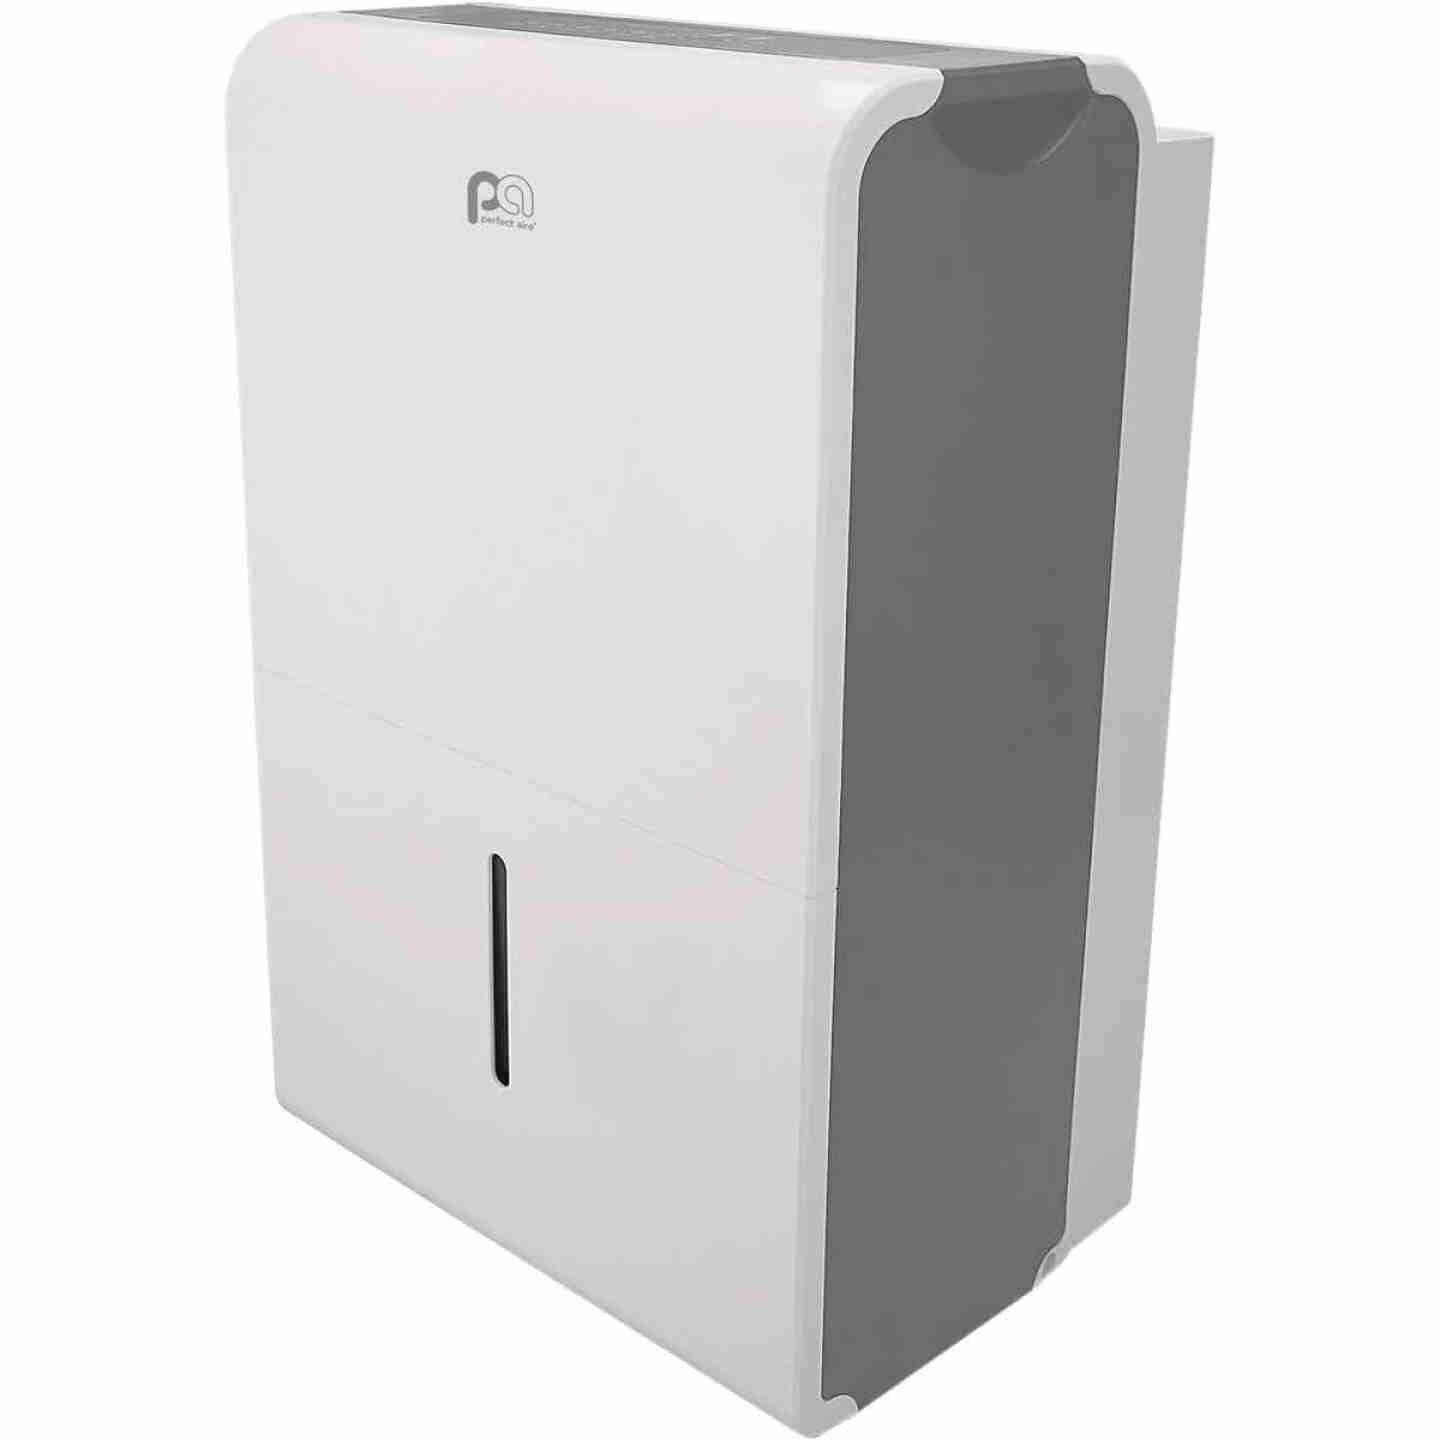 Perfect Aire 35 Pt./Day 592 Sq. Ft. Coverage 2-Speed Flat Panel Dehumidifier Image 1